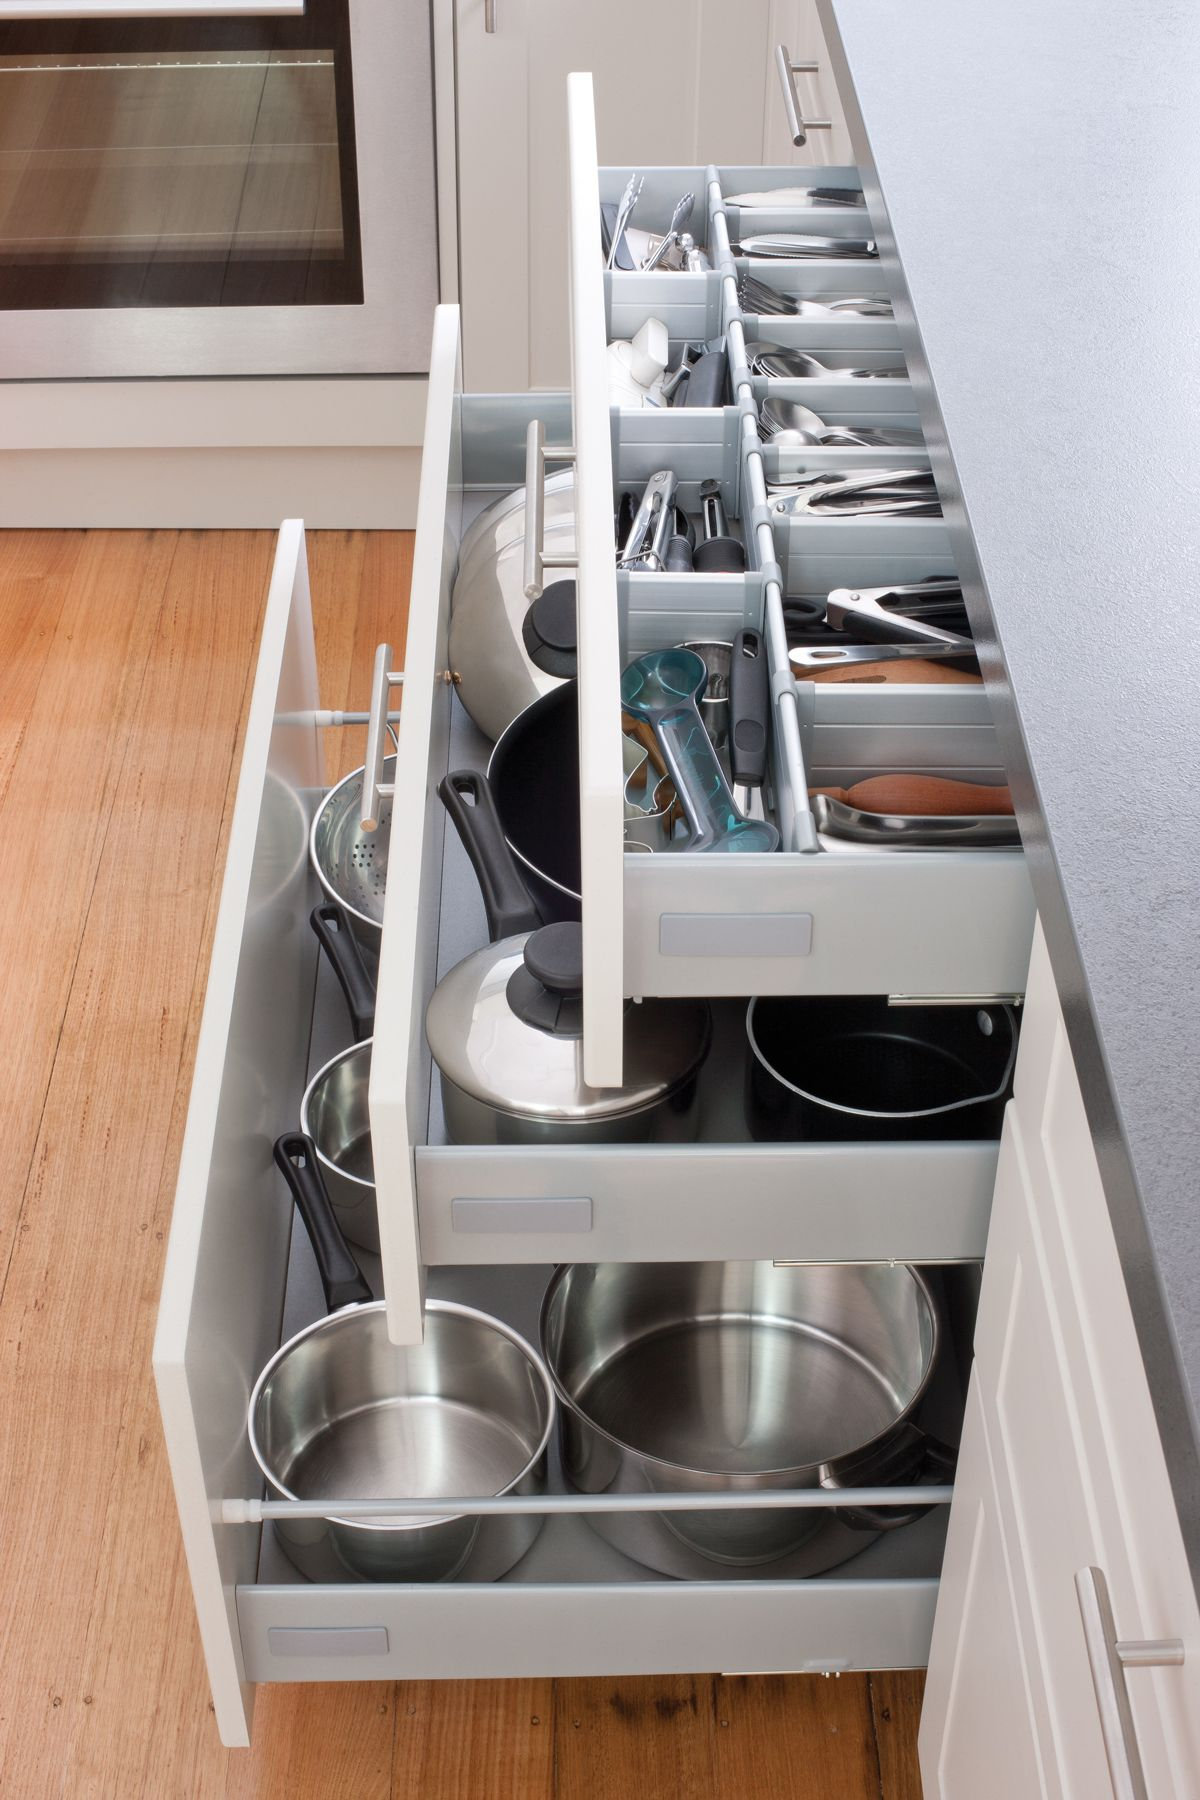 Keep your kitchen in order with our pot drawers and cutlery drawers visit kaboodle com au for more inspiration